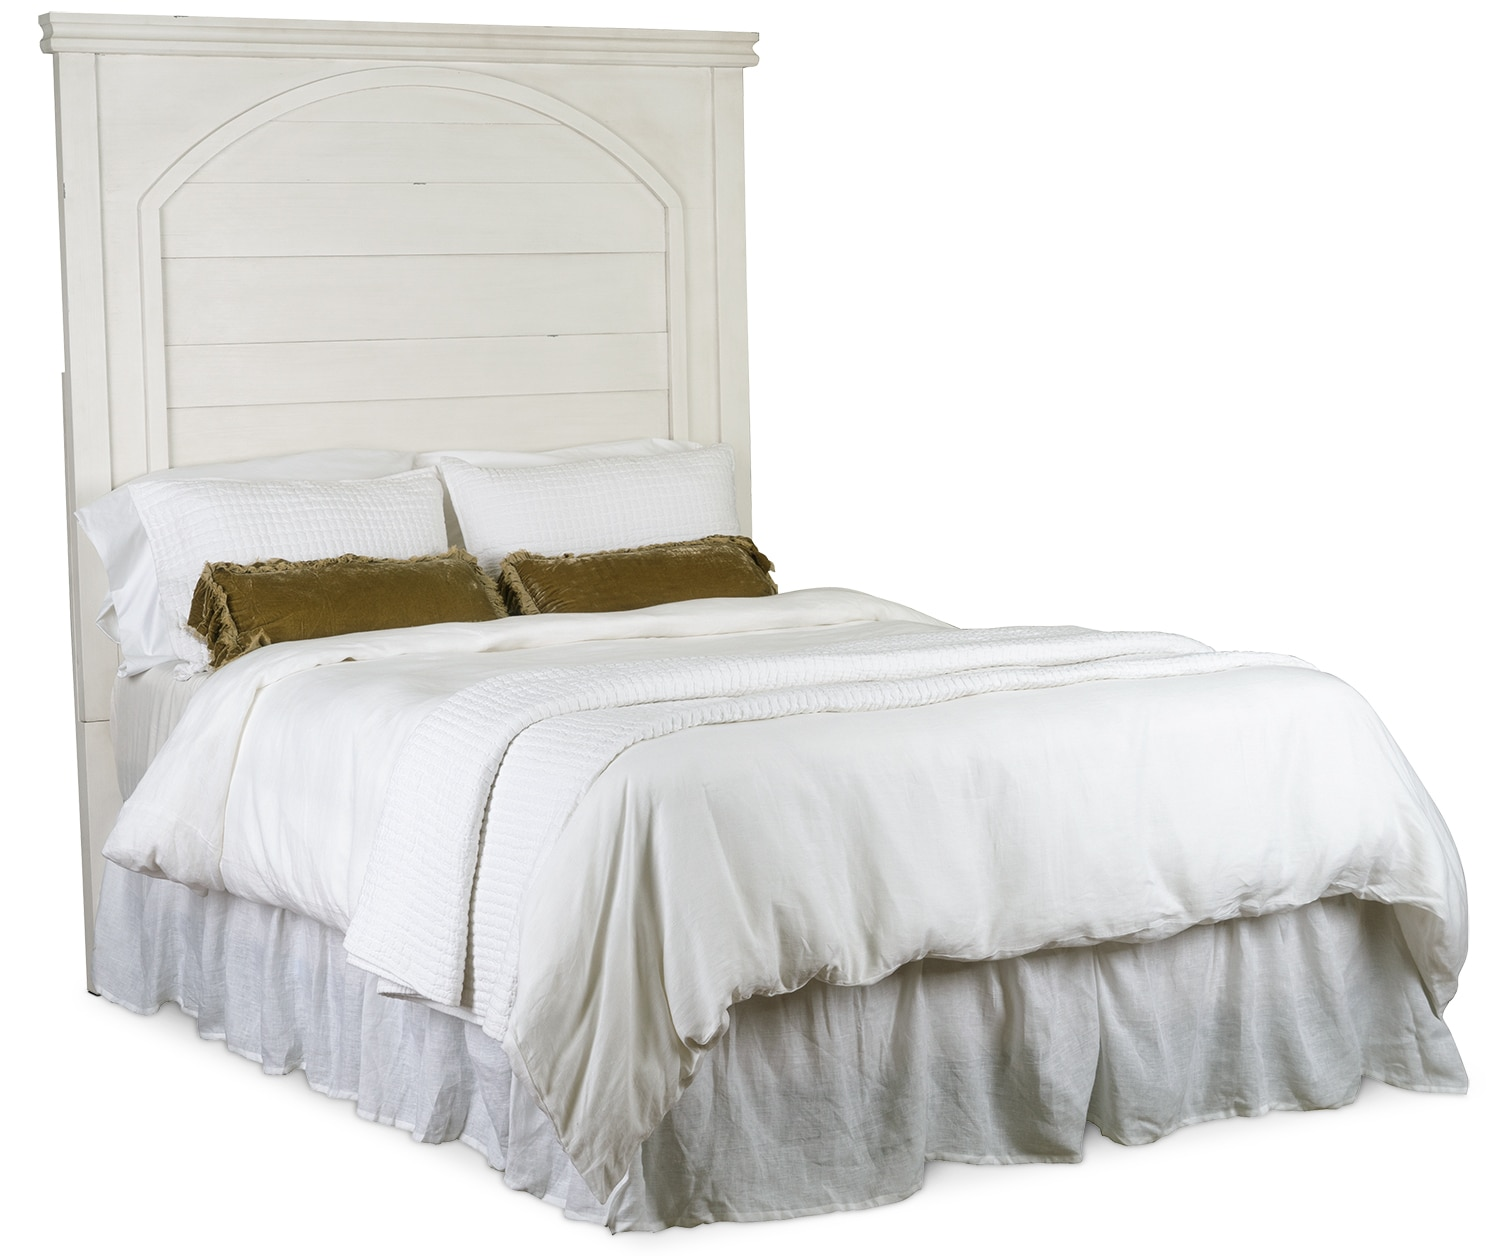 Bedroom Furniture - Queen Passage Headboard